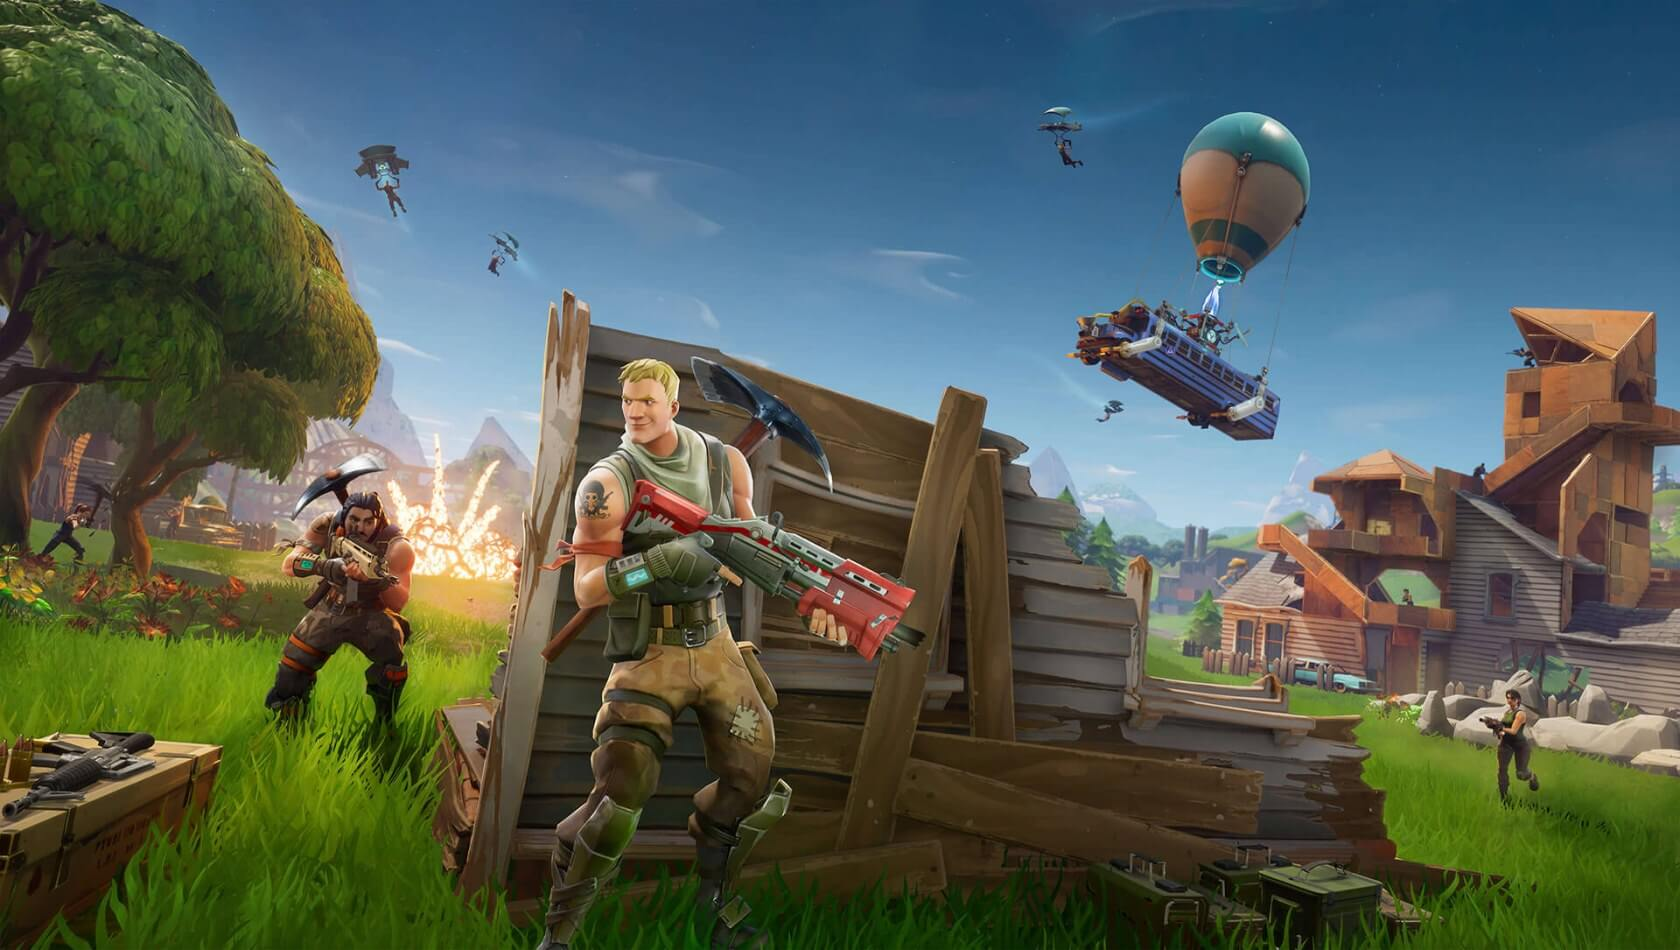 Epic Games allegedly sent a player's personal GDPR data to a 'random person'